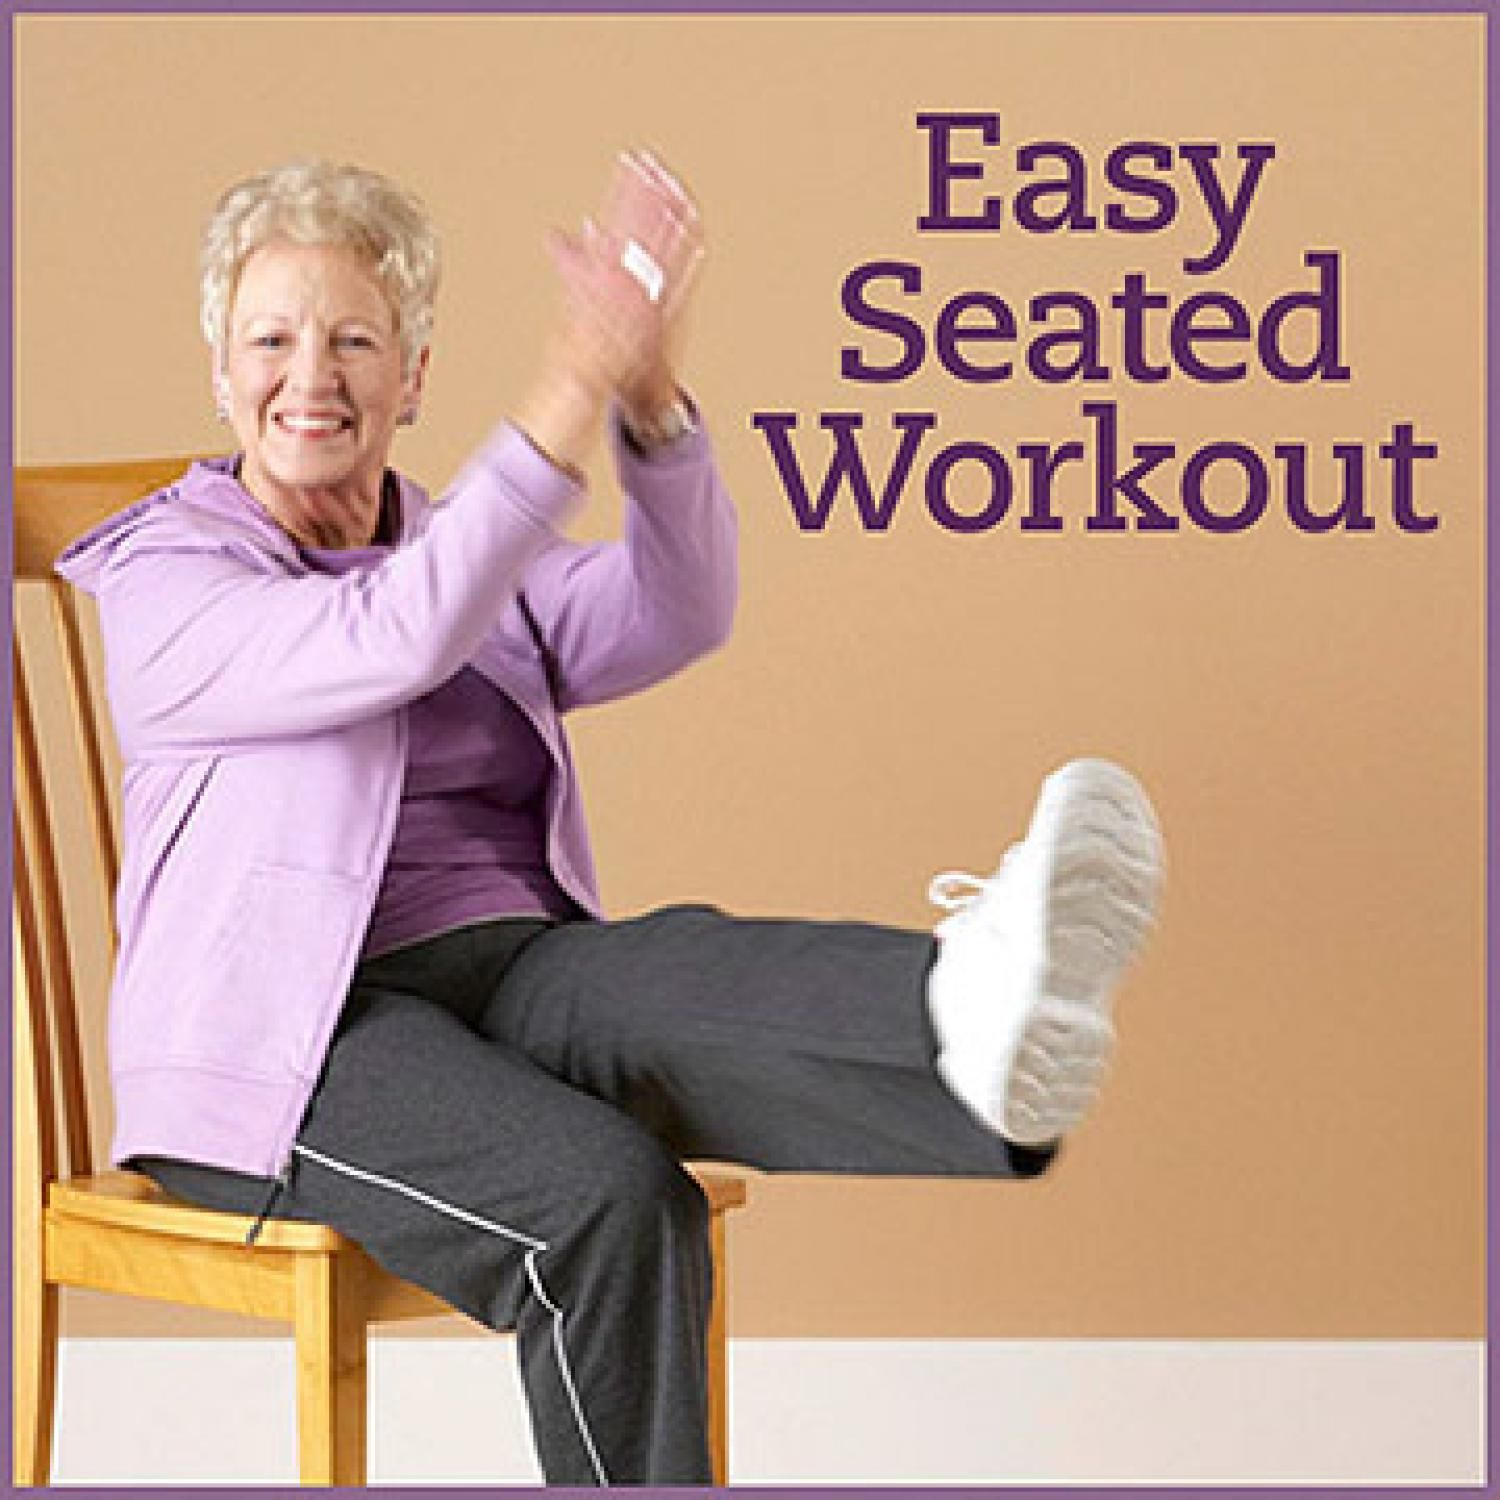 Chair Exercises For Seniors In Wheelchairs Lifetime Stacking Chairs Black Seated Flexibility Cardio And Strength Workout Senior